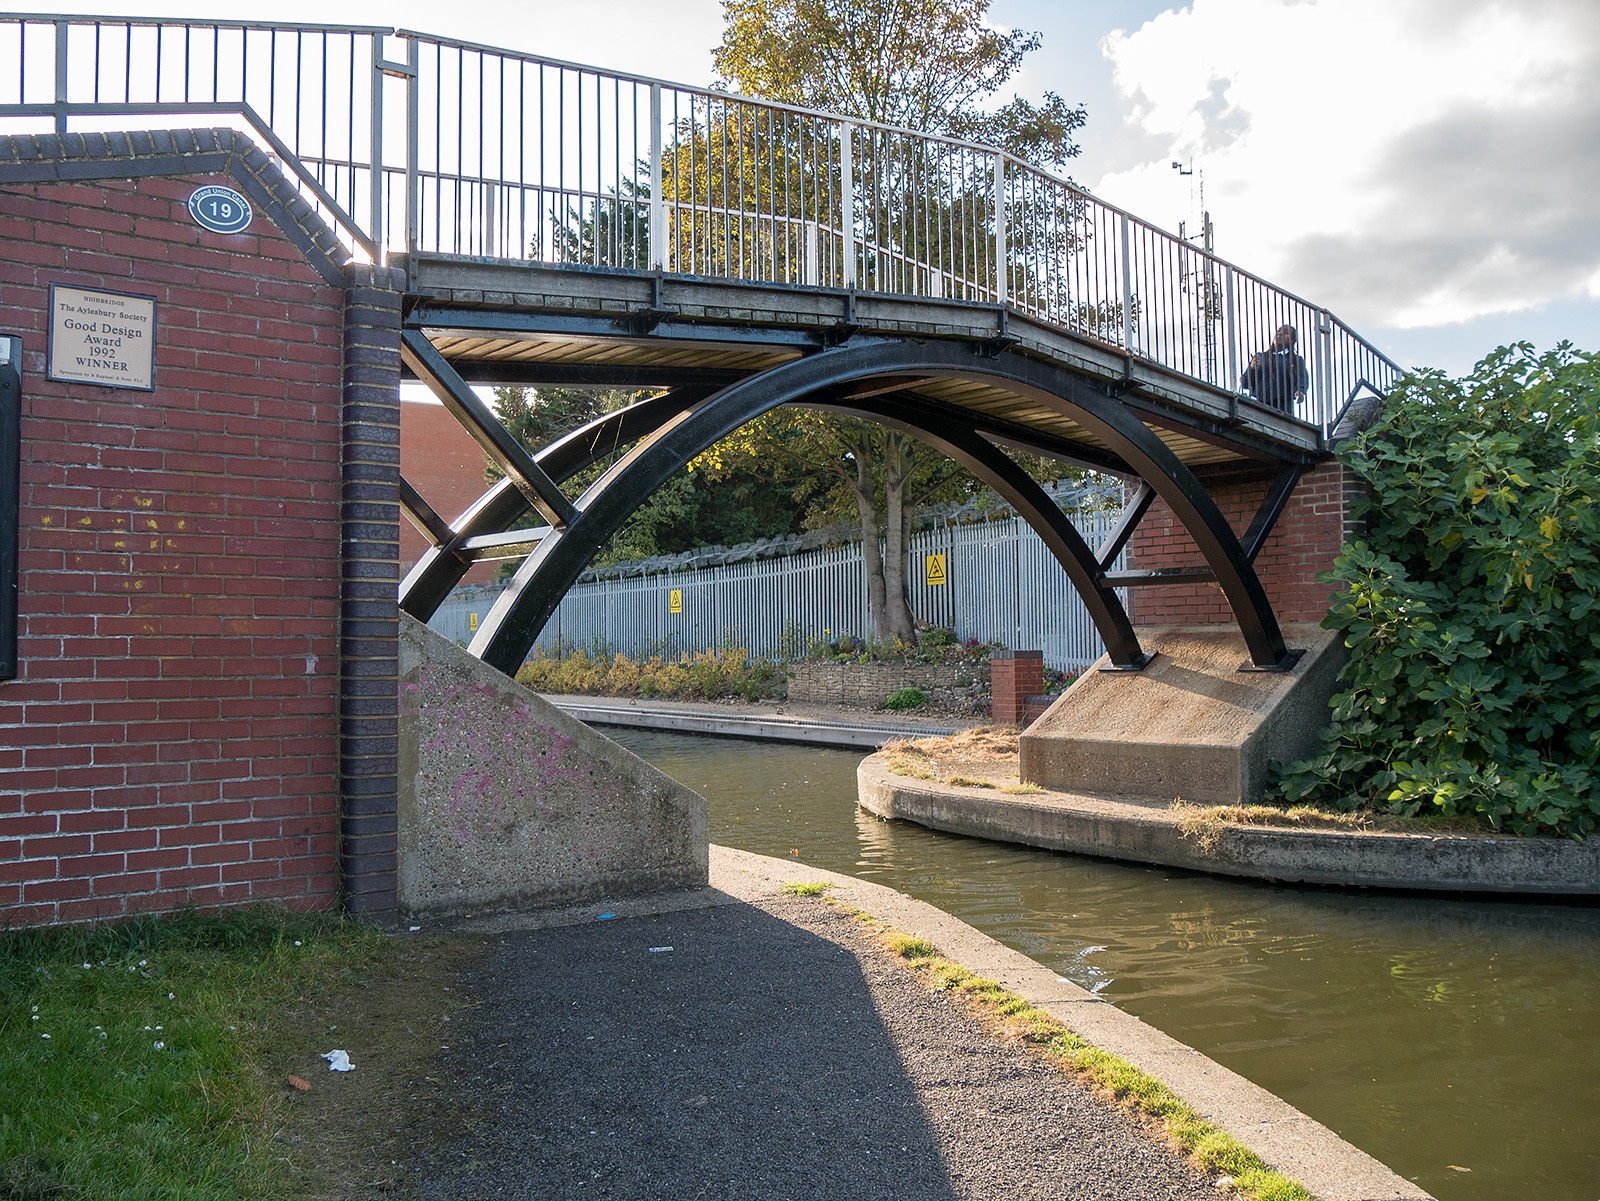 Award winning bridge on the approach to Aylesbury.